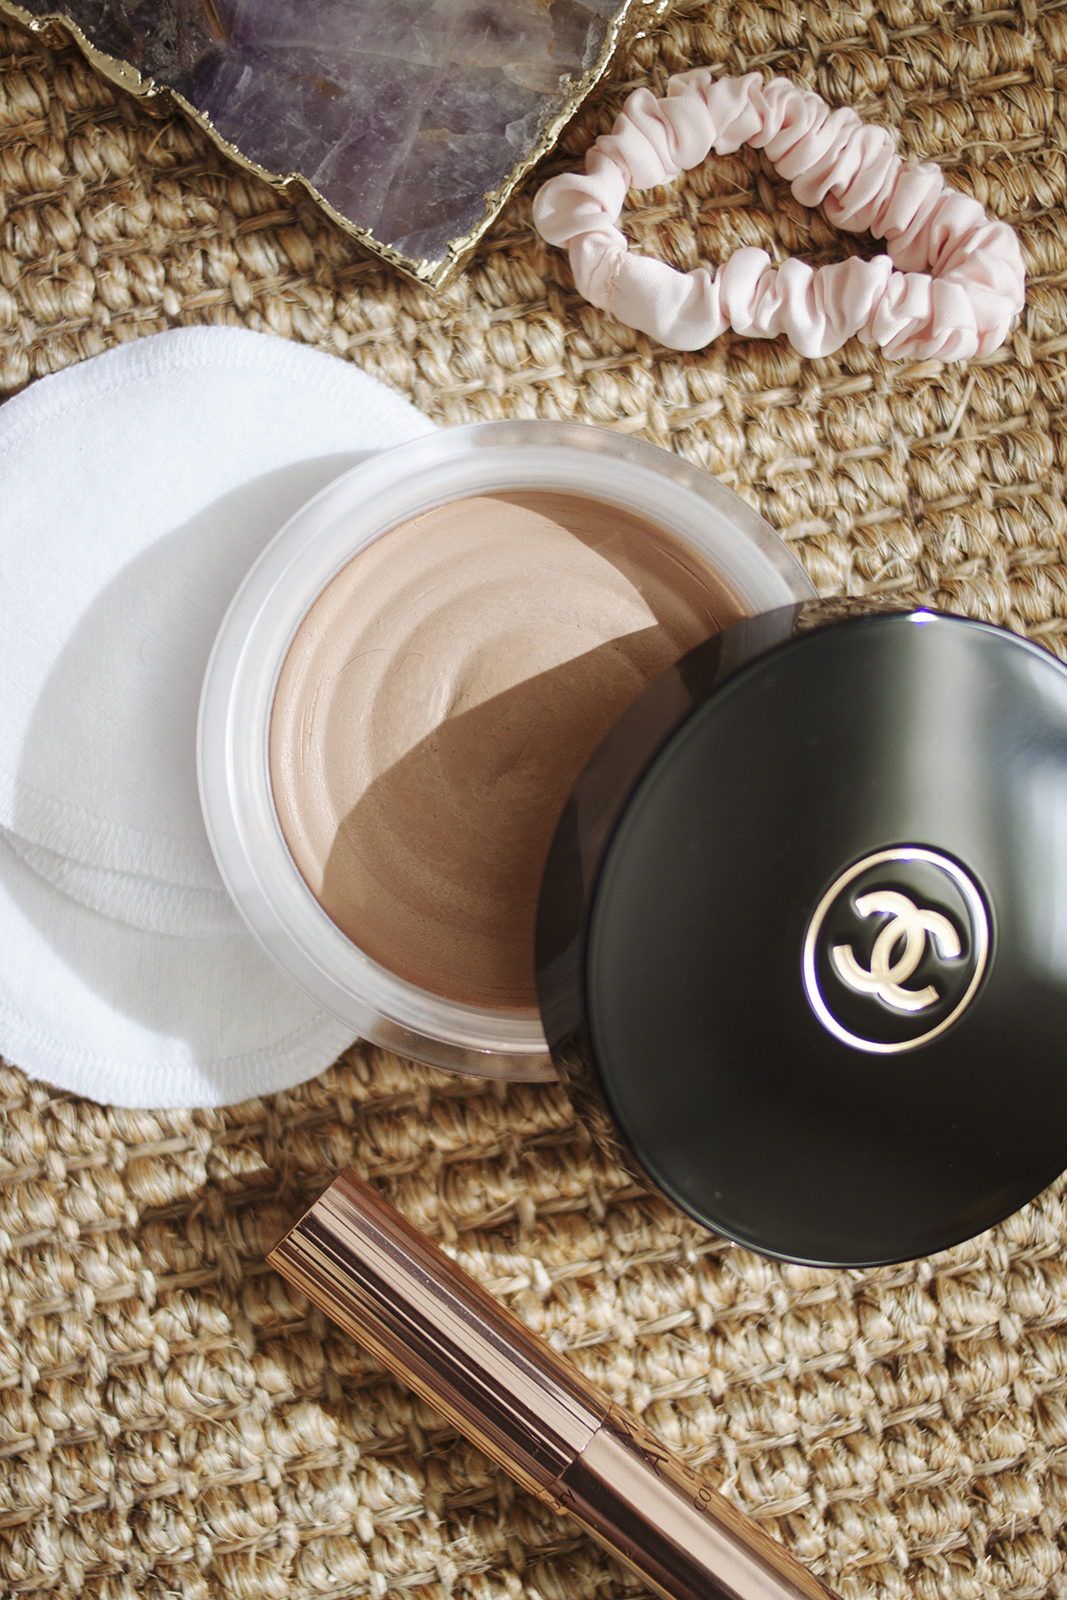 - I mentioned in my makeup favourites for 2018 that I'd finally fallen in love with bronzer, and while I didn't have this product with me while I travelled in Feb/March, I've used it every day since we've been reunited and I'm absolutely obsessed. It's the Chanel Soleil Tan de Chanel, and if you've been a part of the online beauty community for a while, you may remember everyone hyping this up as far back as 2013 (possibly even earlier). This still gets the occasional mention today, and as someone who has recently started using it, I can confirm that it's just as beautiful as everyone has always said.I had some Shoppers Drug Mart points to use up before we left Canada, so this is one of the things I picked up, and it's just such a pleasure to use. I apply it with large fluffy brush and melts into my foundation seamlessly, while adding a beautiful warmth to my skin. The biggest drawback of this product is the fact that there's only one shade, which has always been a problem especially if you have deeper skin. Personally, I was worried it was going to be too orange on my fair skin, but I tend to be pretty light-handed with my bronzer, so I absolutely love the way this looks and I find the shade looks really natural on me. If you're even fairer than I am, I'm sure you could still make it work by applying it underneath your foundation, but I personally don't feel the need to. For some reason I can't find it on David Jones' website so I had to link to a retailer I've never used, but I'm sure they would have it in stock at a counter if you're interested in trying it out.